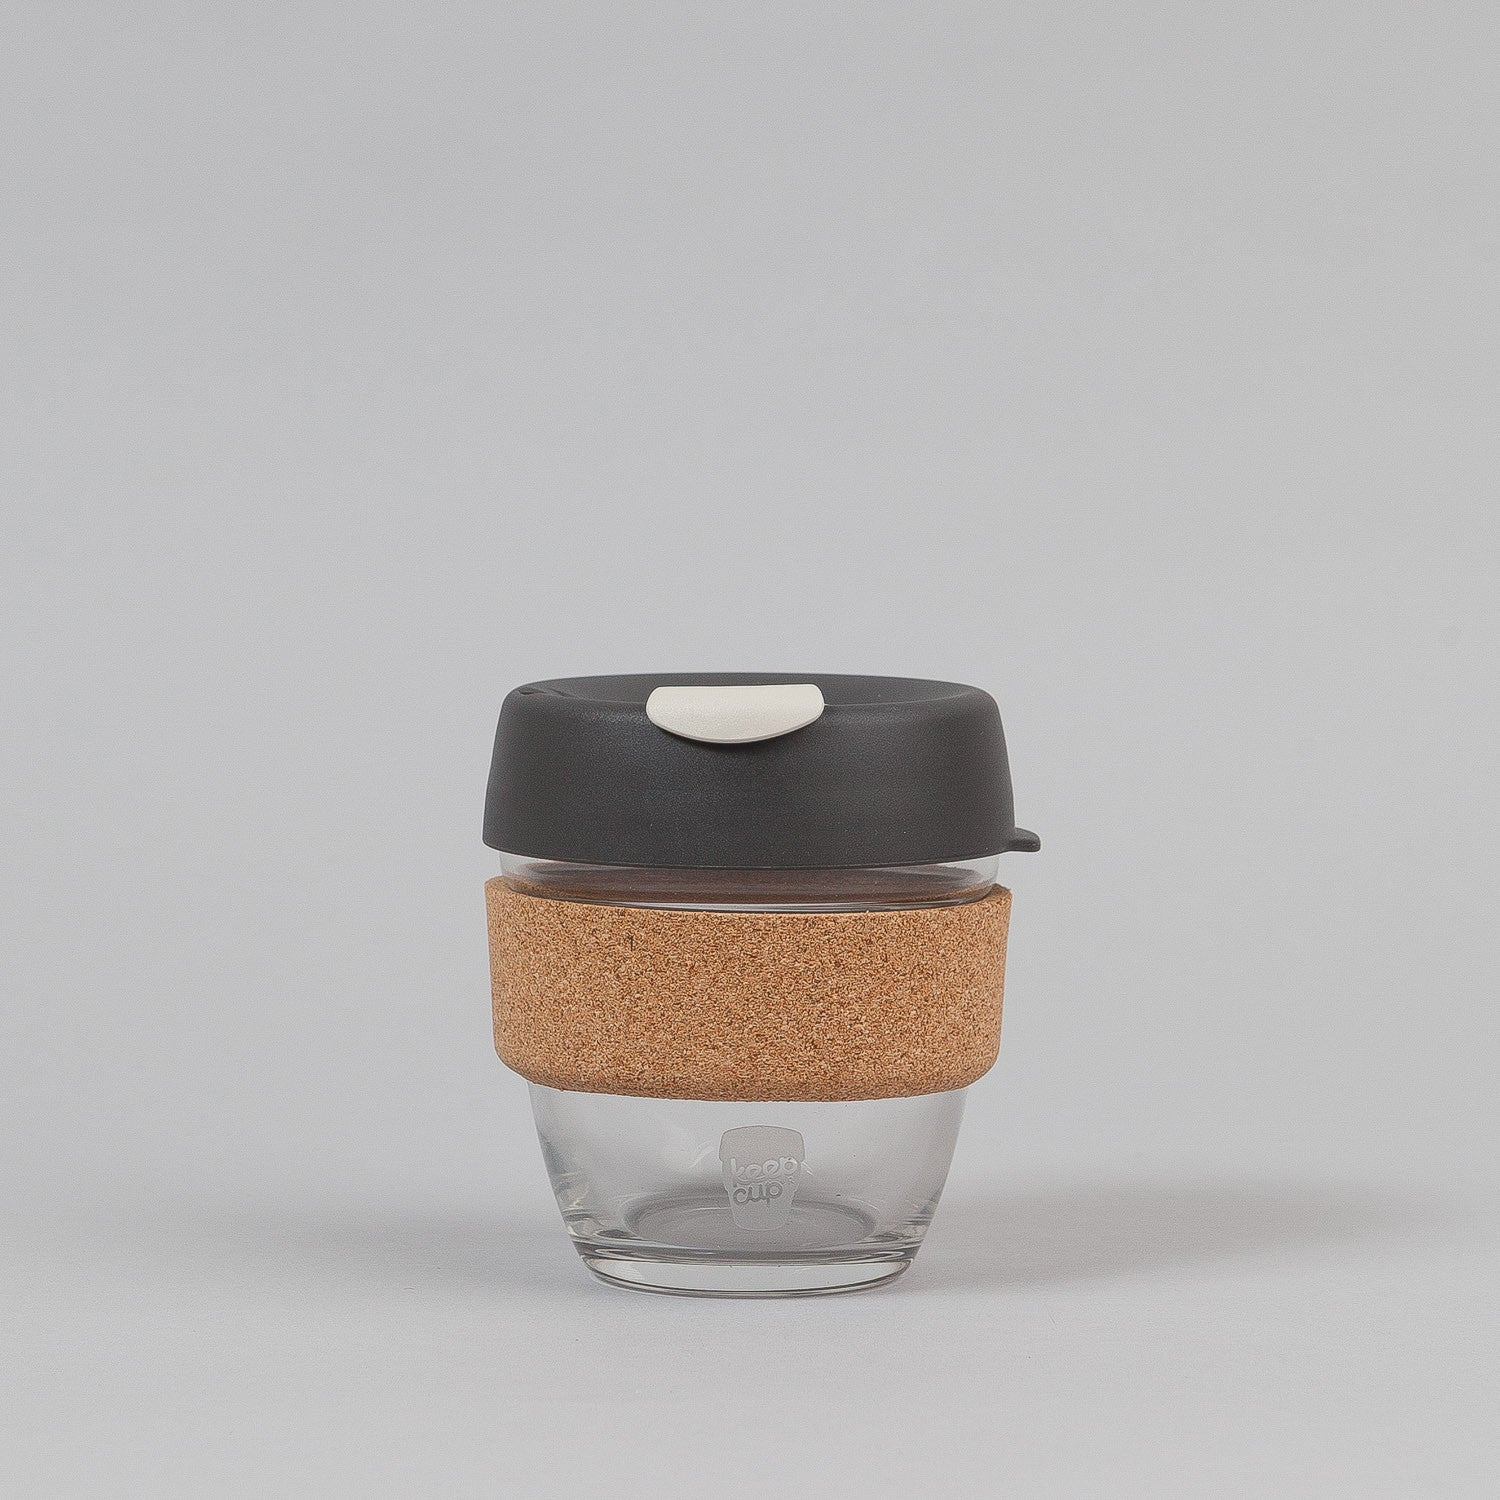 KeepCup Press 8oz Small Glass Coffee Cup - Soft Charcoal / Cork